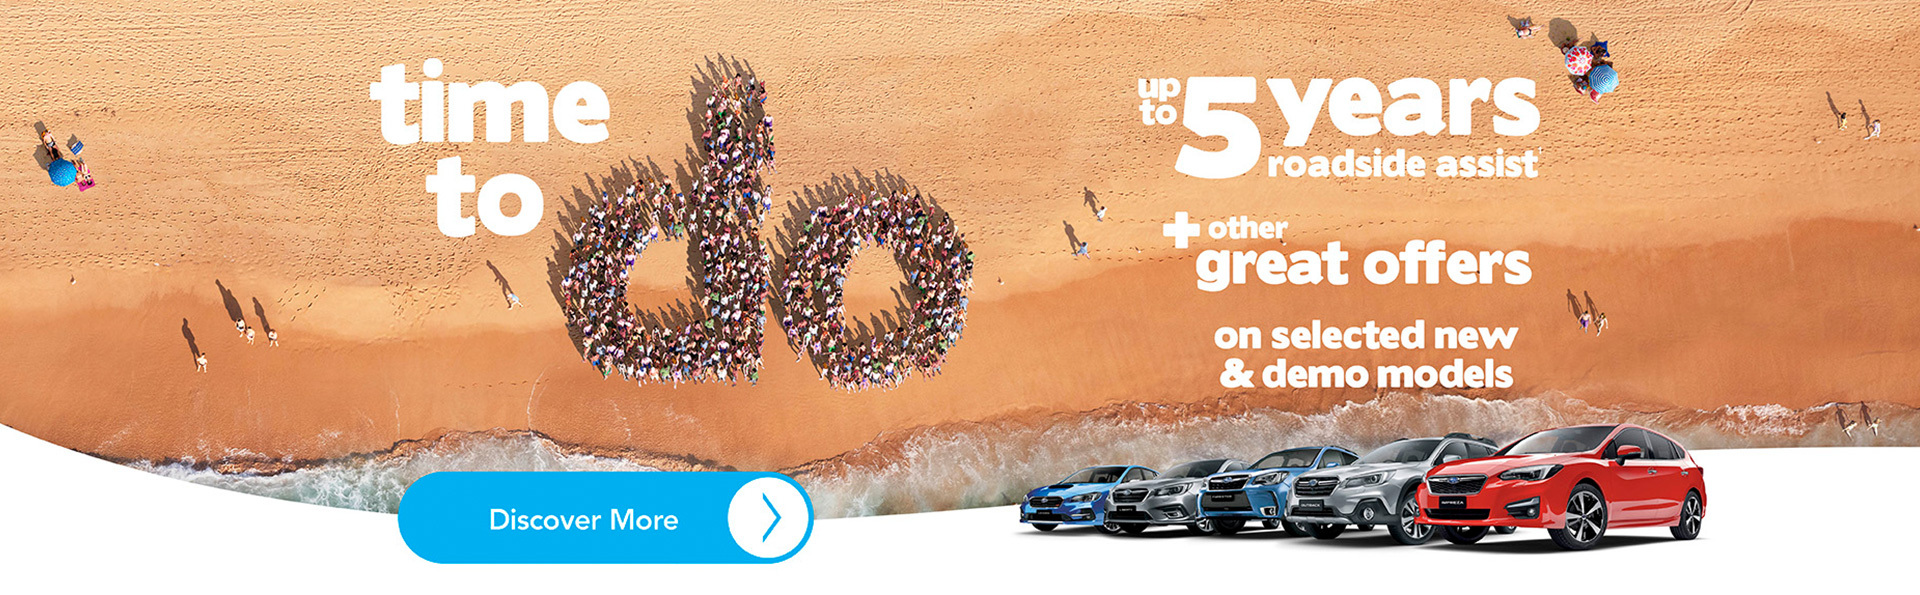 Subaru - March - 5 Years roadside assit & other great offers on selected new & d